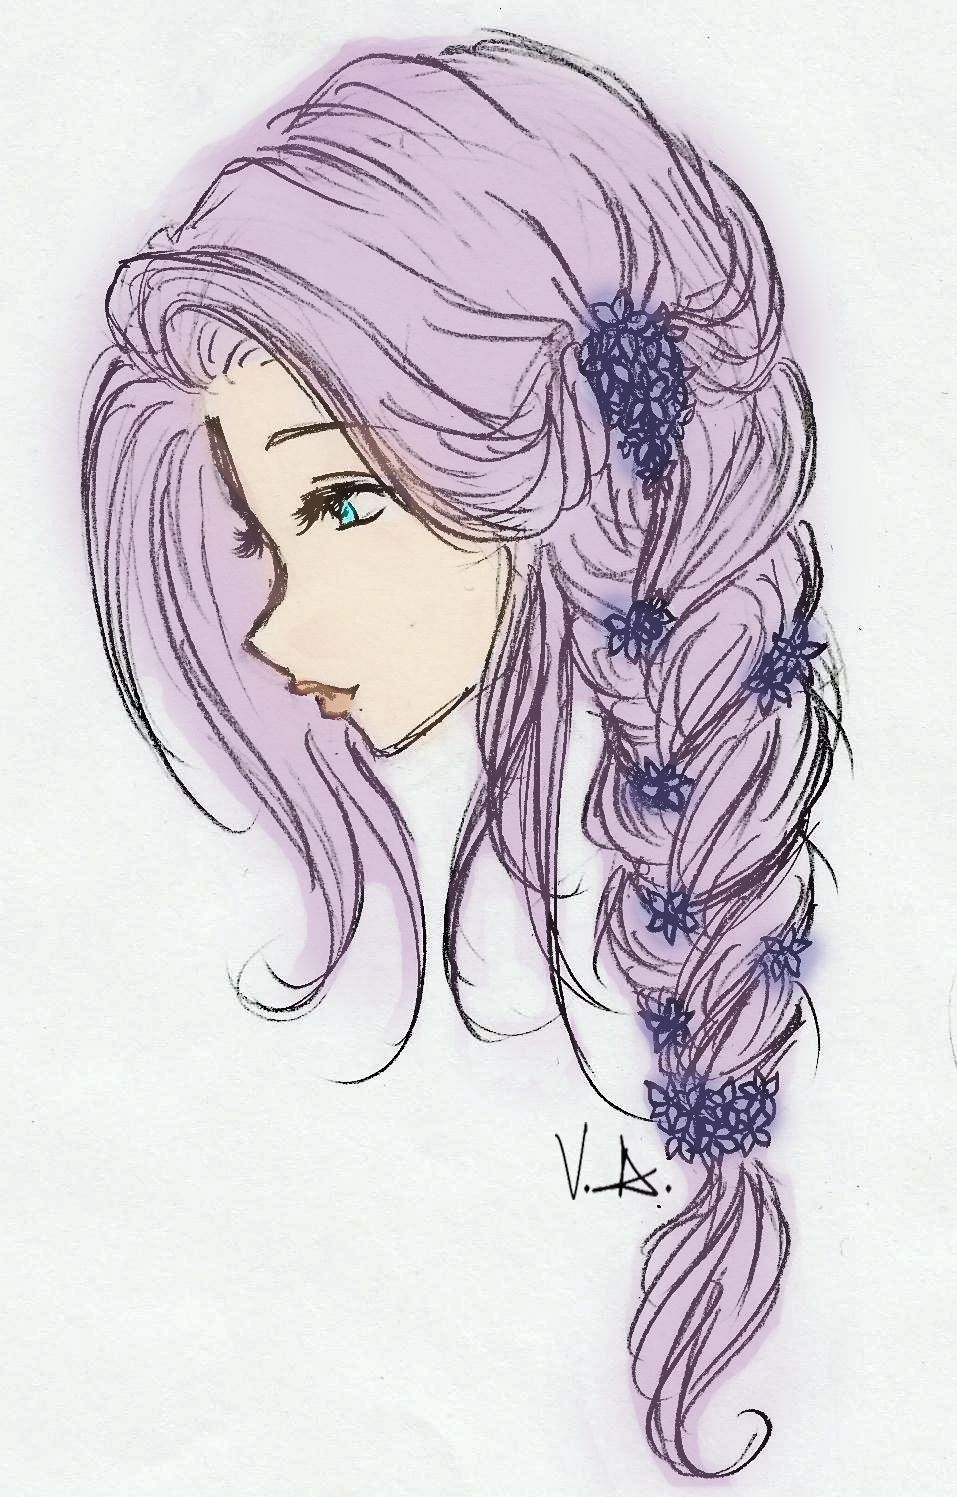 Hakuna matata girl hair drawing long hair drawing drawings of girls hair hair